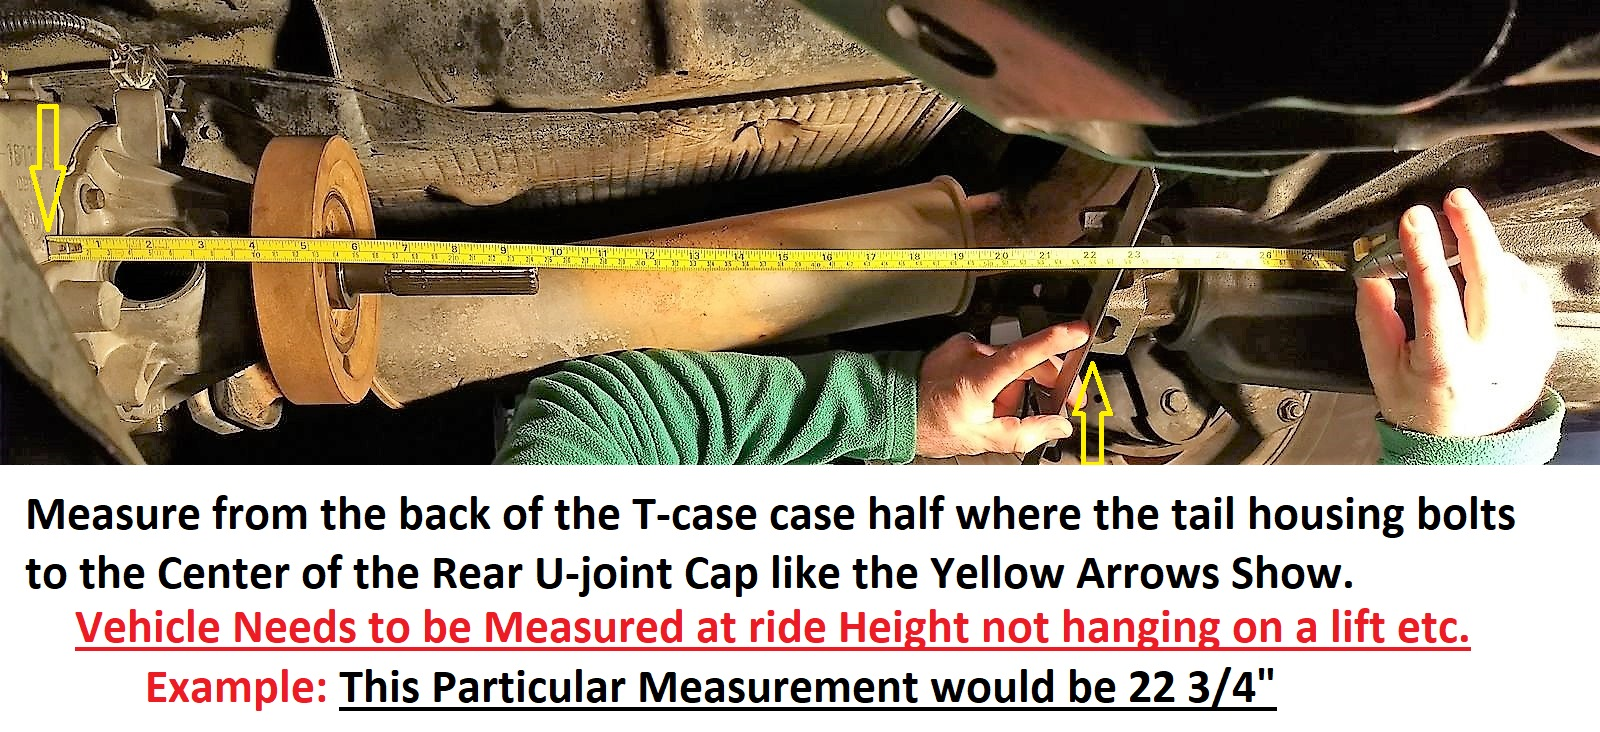 transfer-case-to-center-of-rear-u-joint..jpg